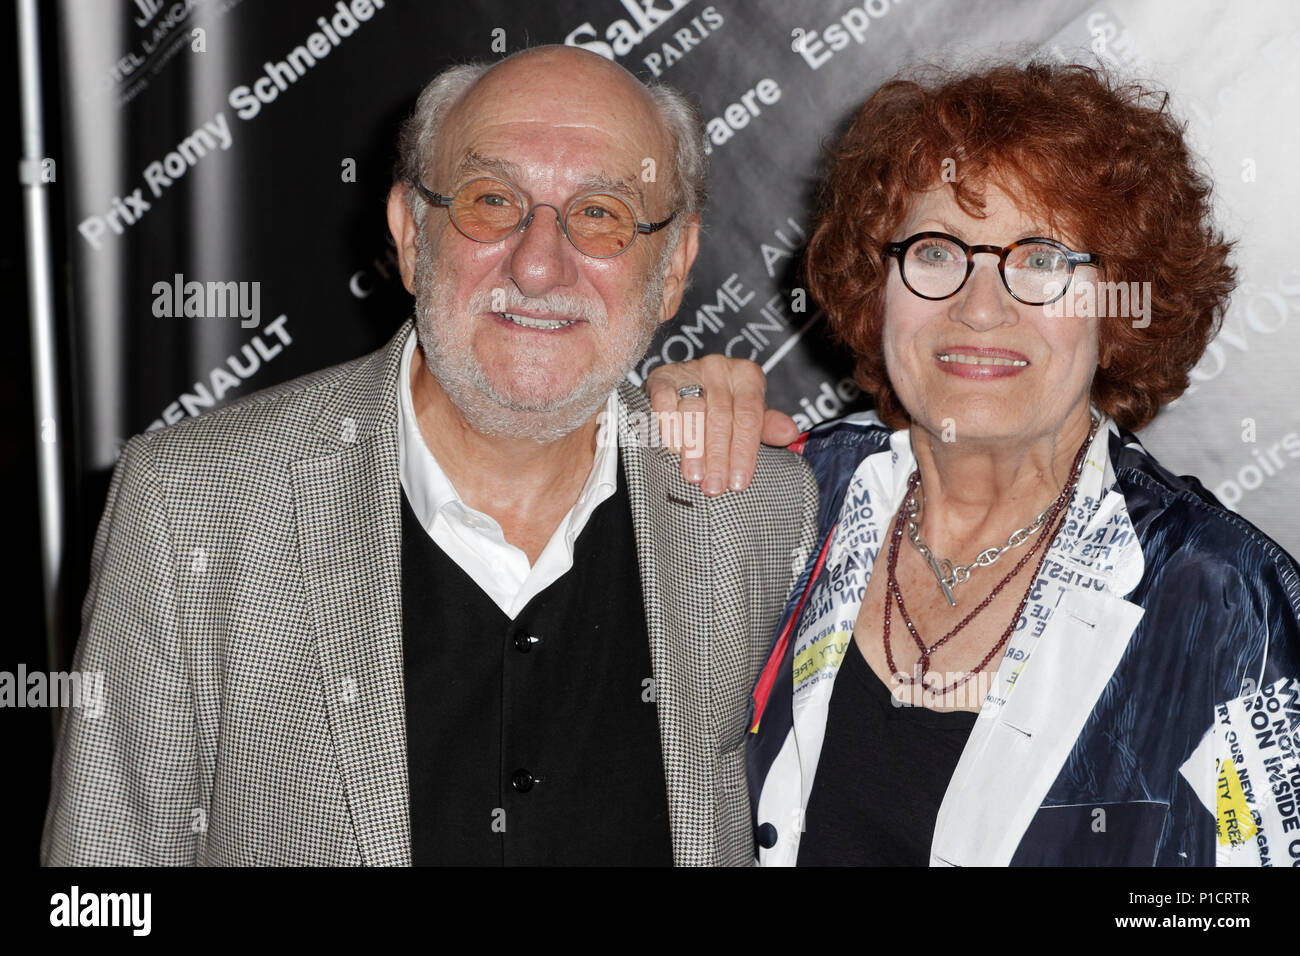 Andréa Ferréol paris, france. 11th june, 2018. frederic vidal and andréa